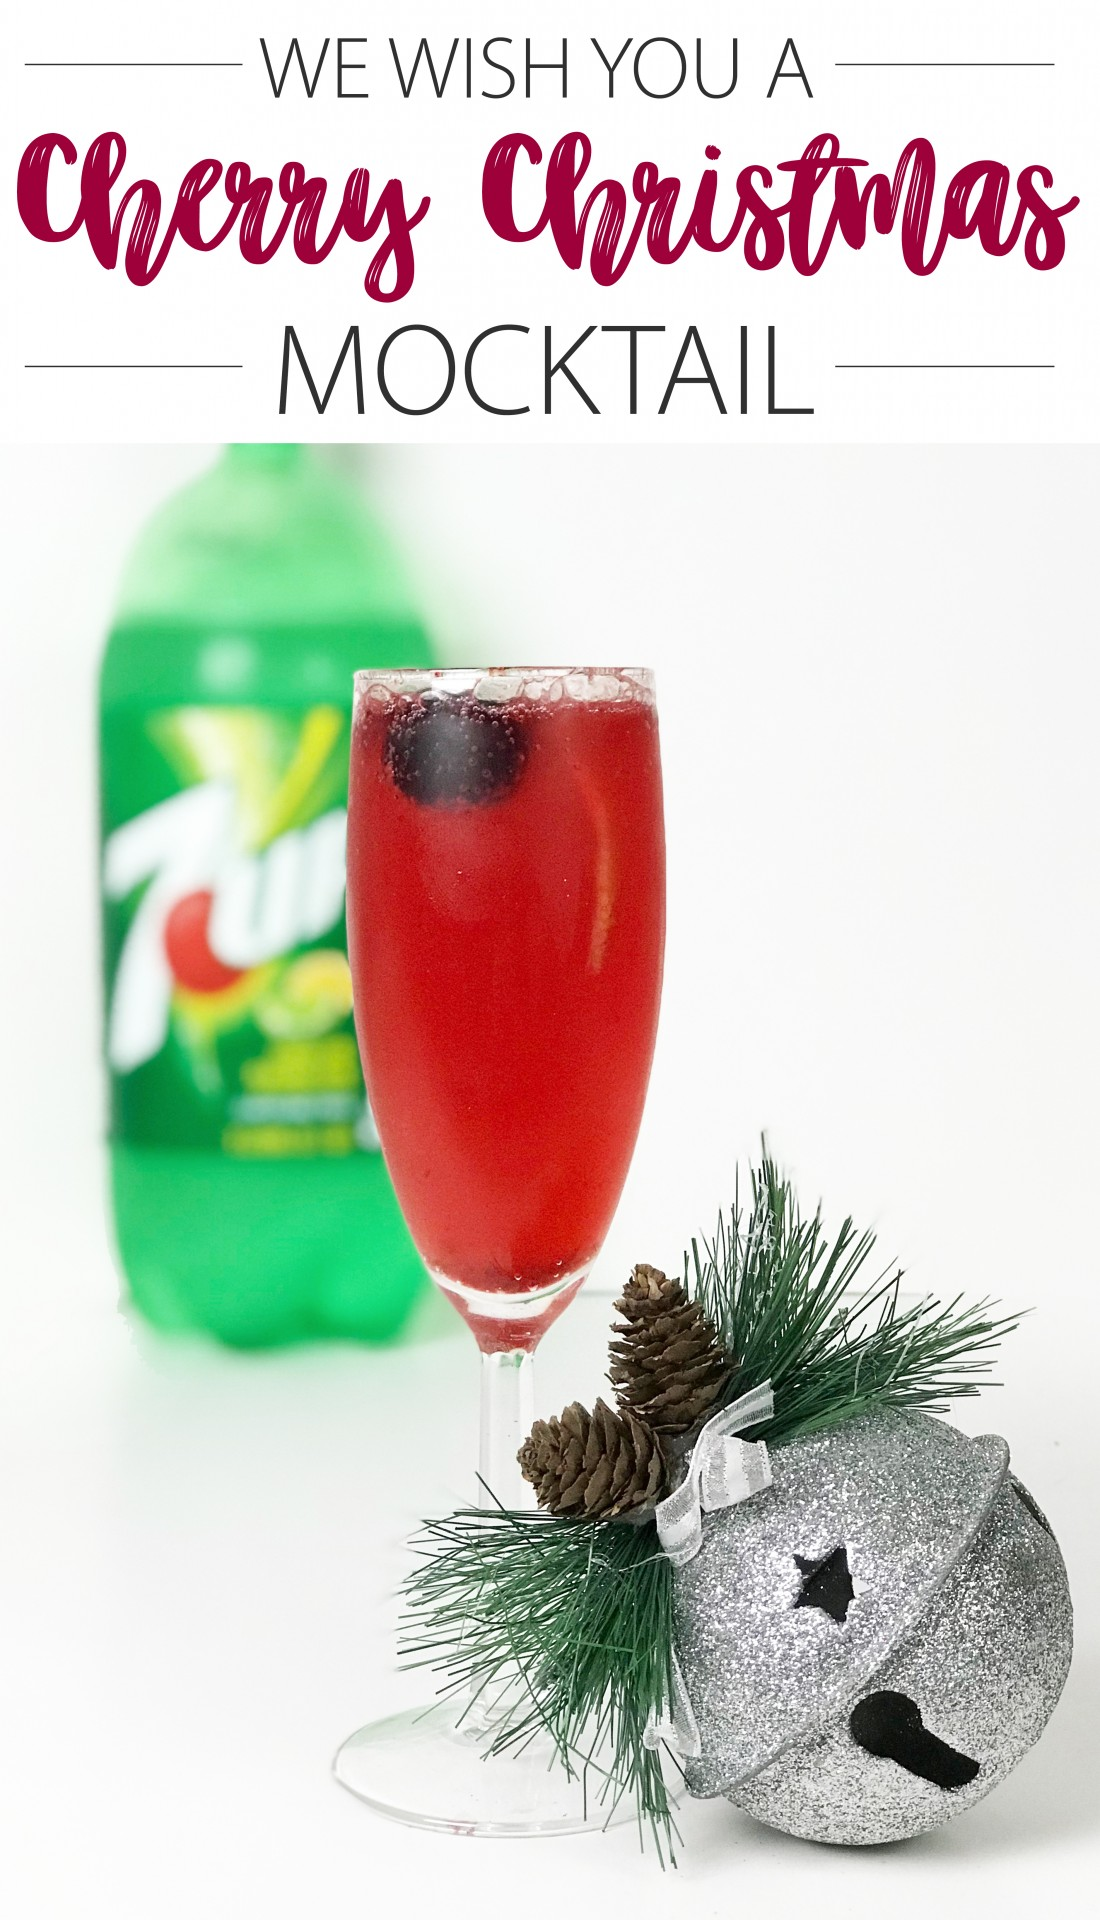 Cherry Christmas Mocktail Drink